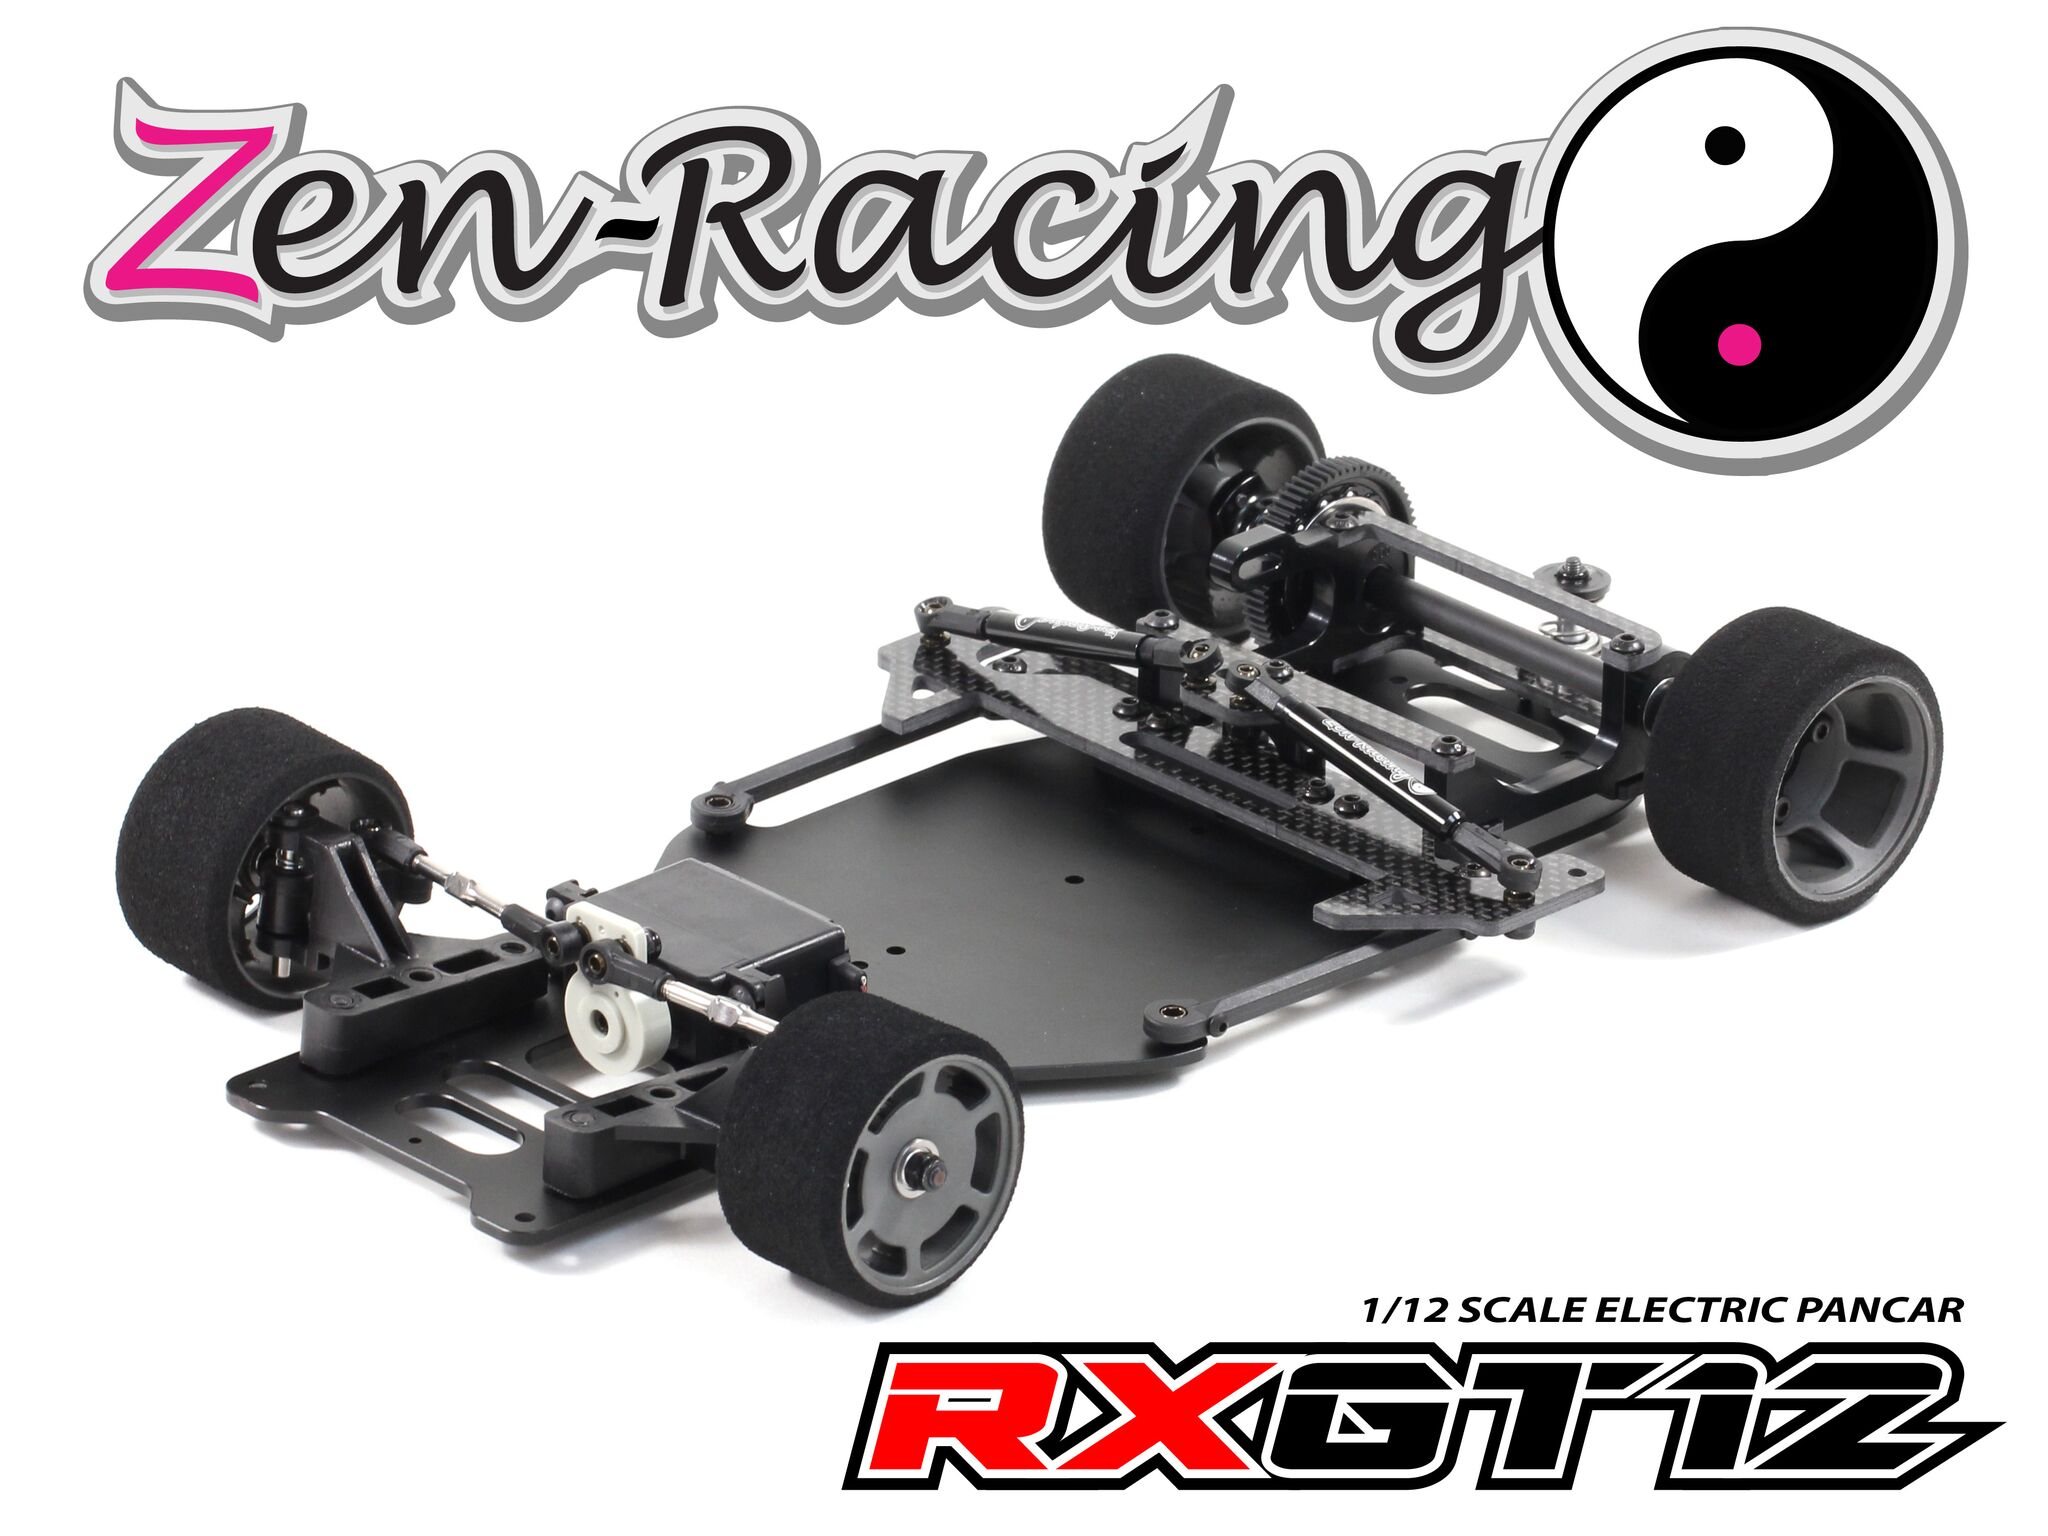 RXGT12 Race kit with Carbon Chassis